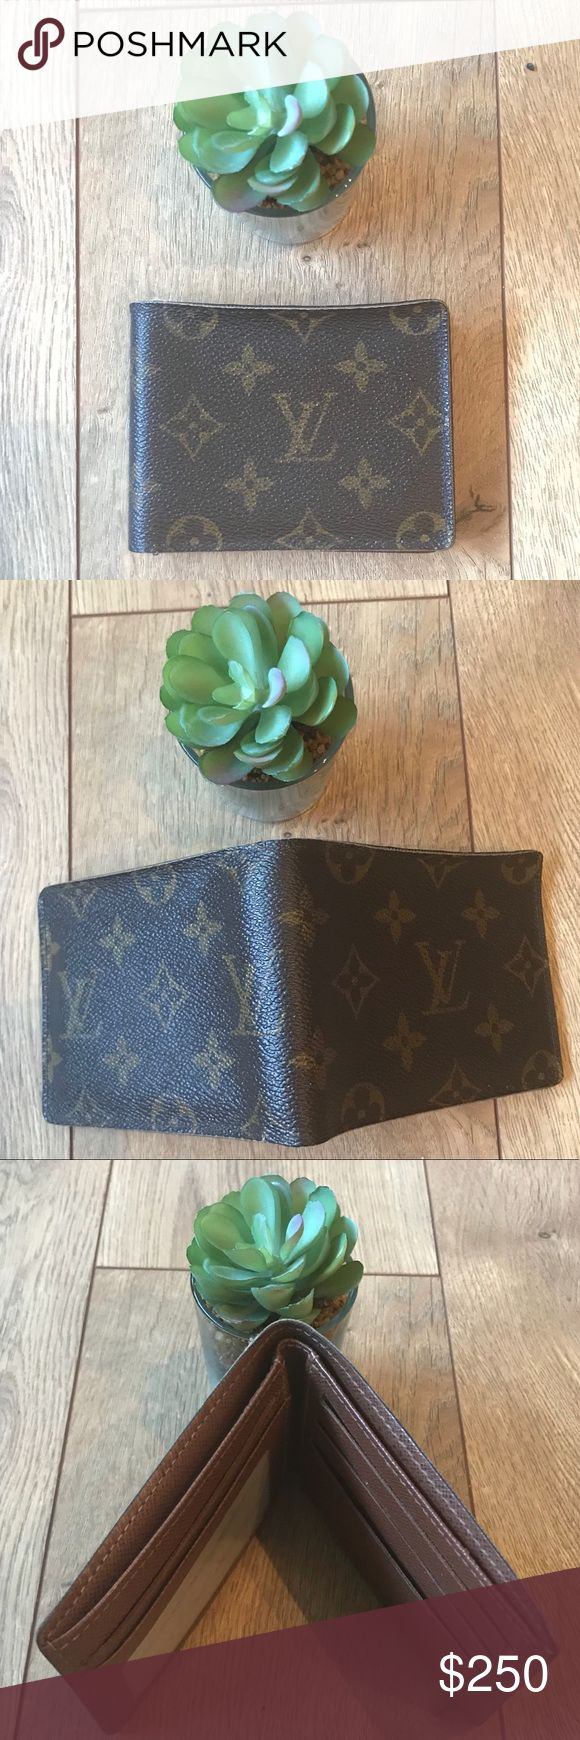 Authentic Used Louis Vuitton Mens Wallet Used Louis Vuitton Monogram Mens Porte Billets 3 Card Billfold Wallet in great condition   This stylish wallet is finely crafted of fine grain leather in Louis Vuitton's signature monogram print. The wallet opens to a compact leather interior with card slots and a central bill fold. This is an excellent mens wallet for everyday use, from Louis Vuitton! Louis Vuitton Accessories